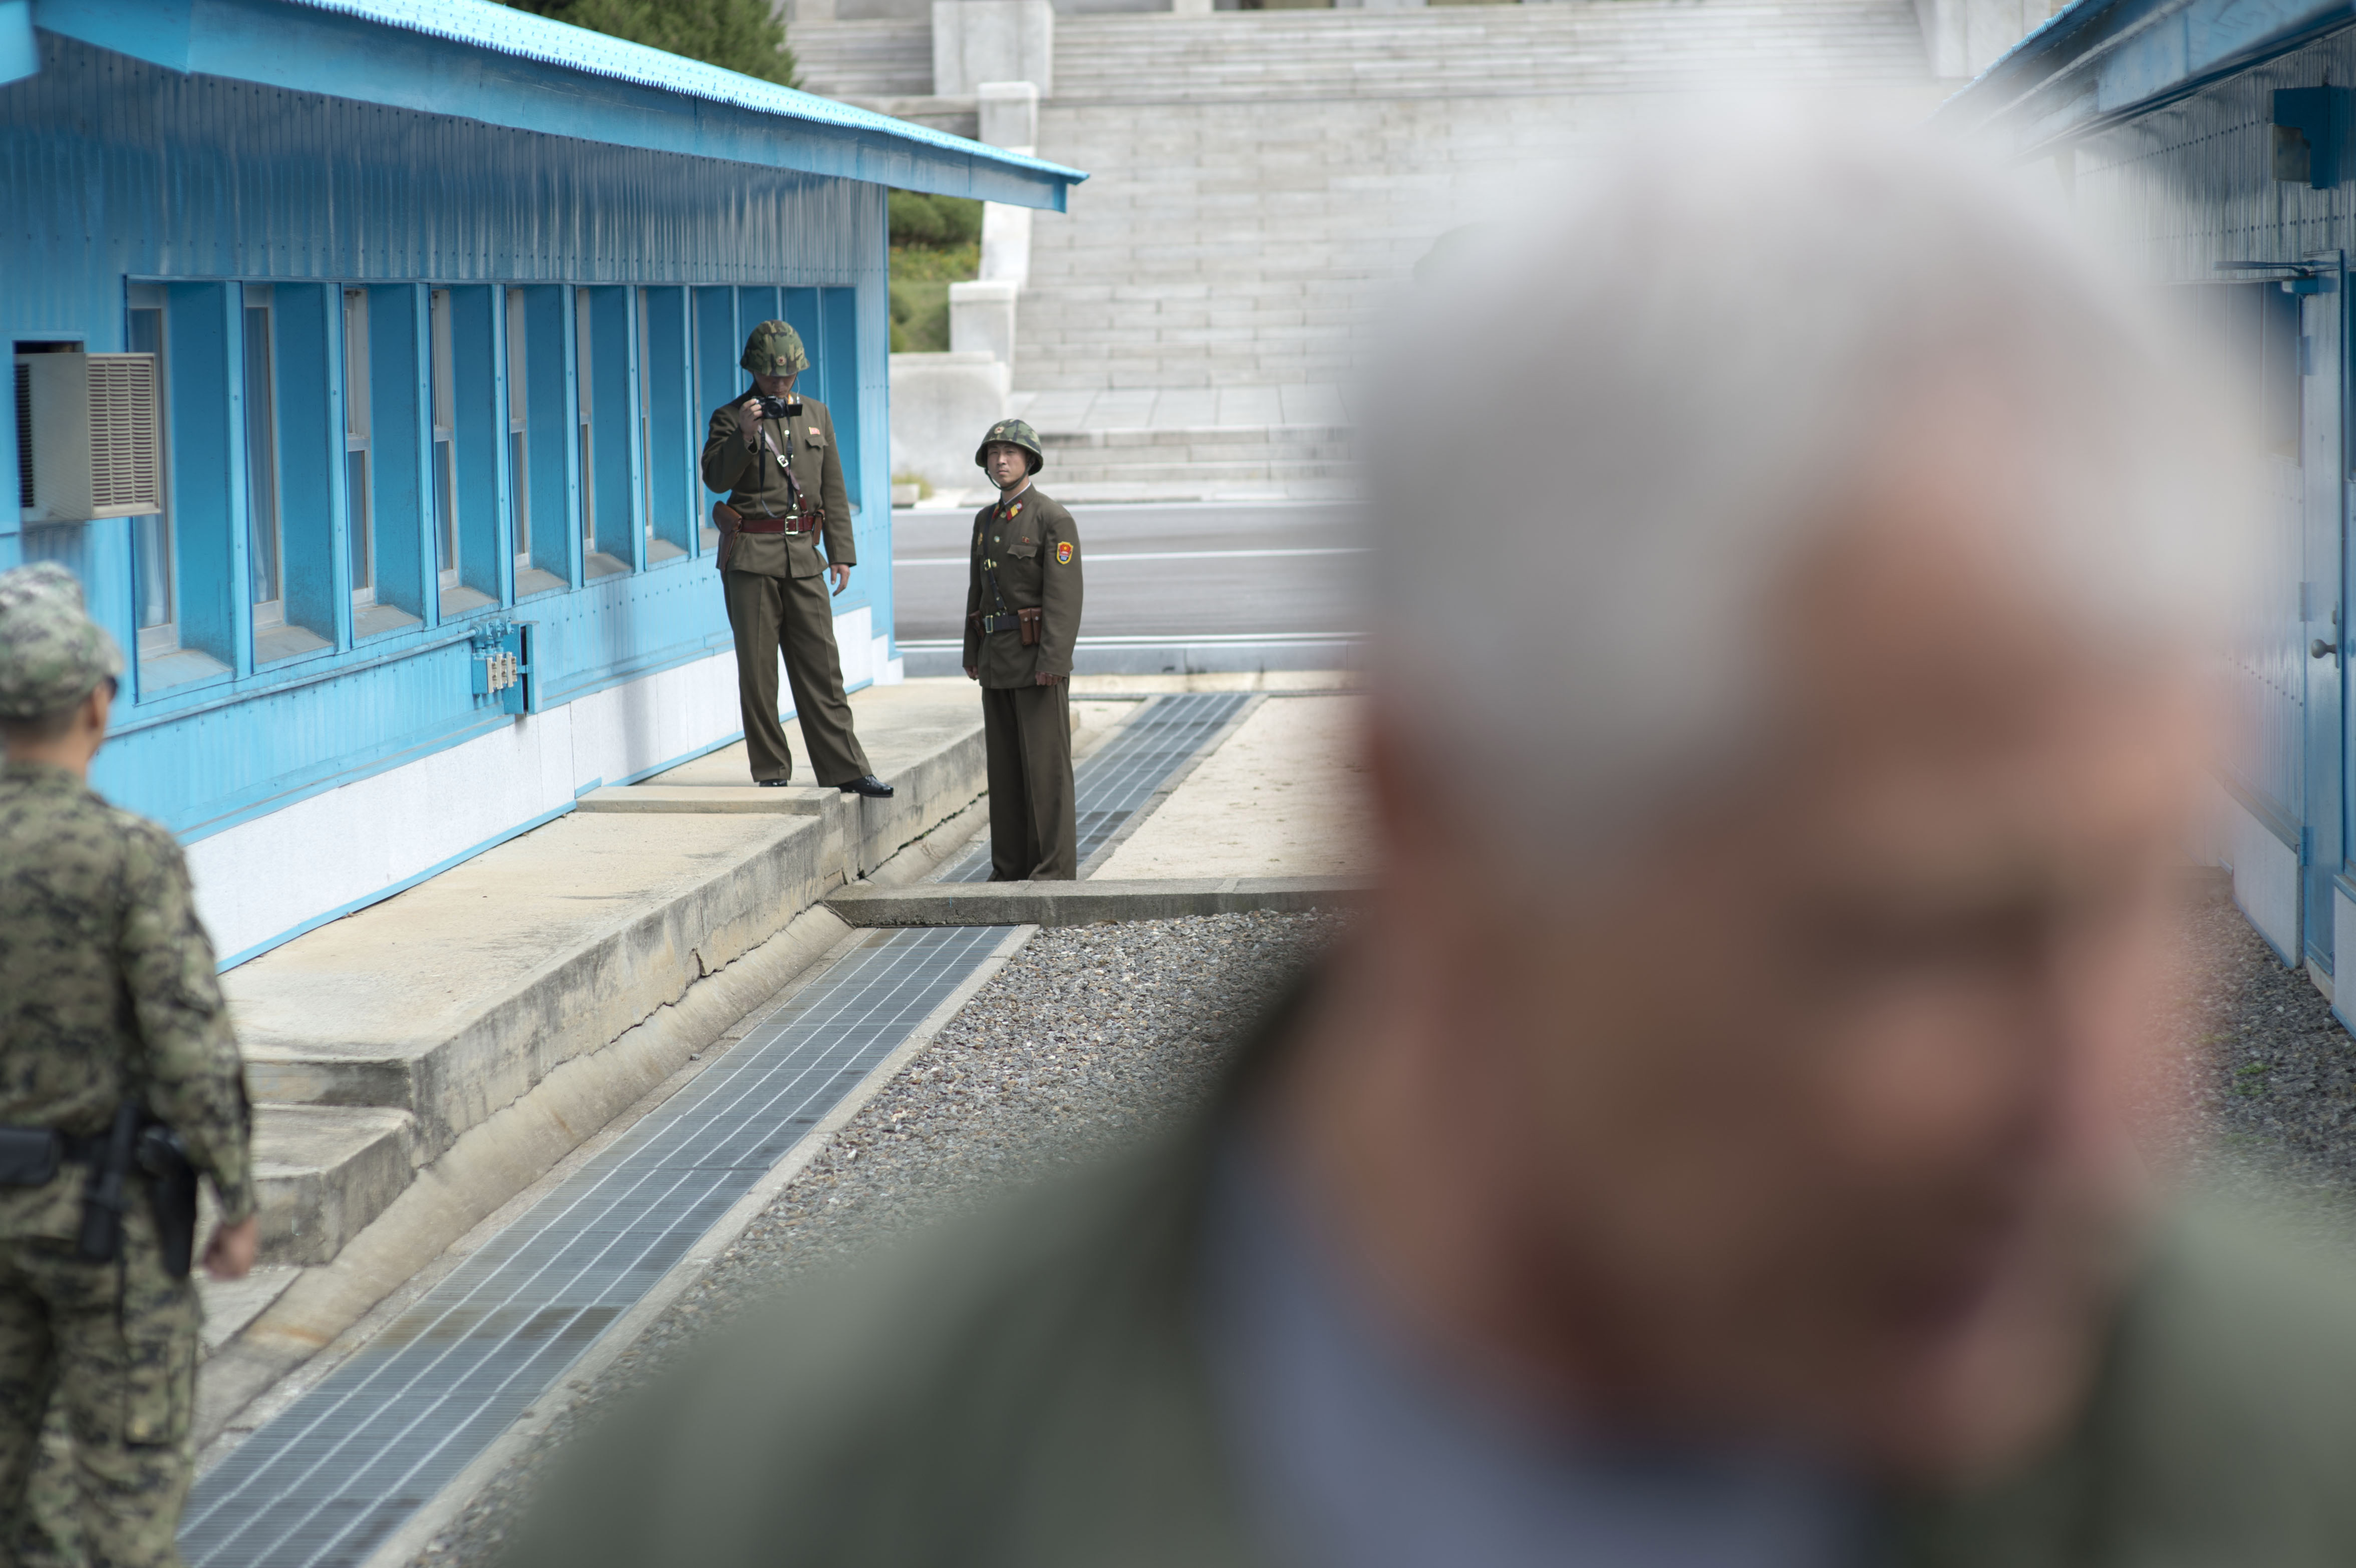 North Korean Leader Prospers While His People Starve Featured